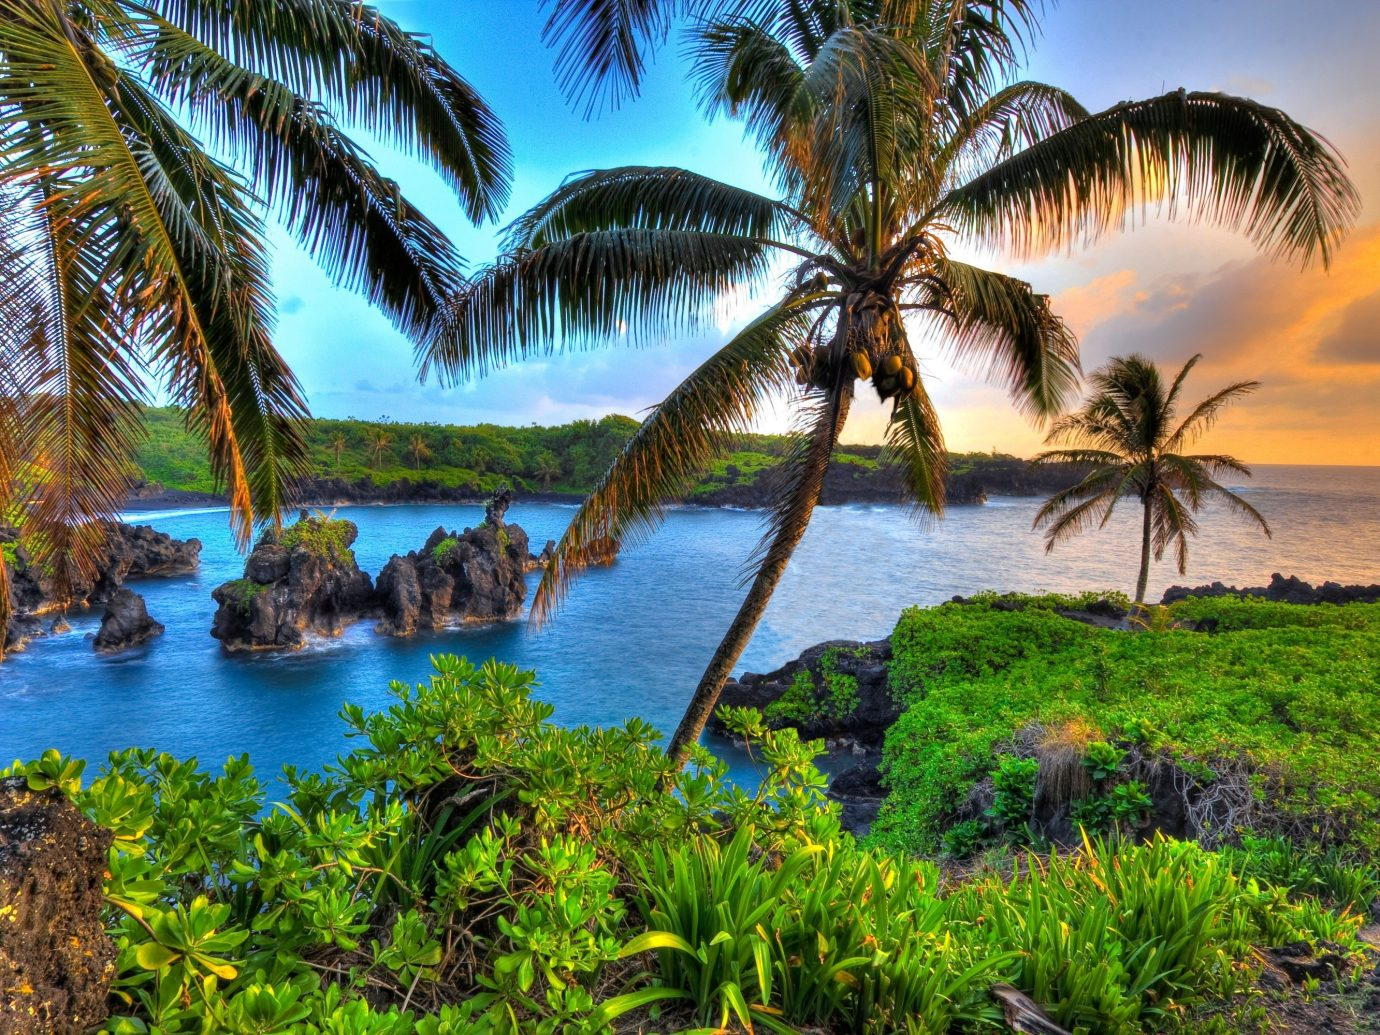 outdoor tree water palm grass habitat vegetation geographical feature body of water natural environment ecosystem Coast River Lake tropics plant Ocean shore arecales Sea Beach palm family woody plant Jungle landscape bay rainforest Lagoon savanna pond surrounded